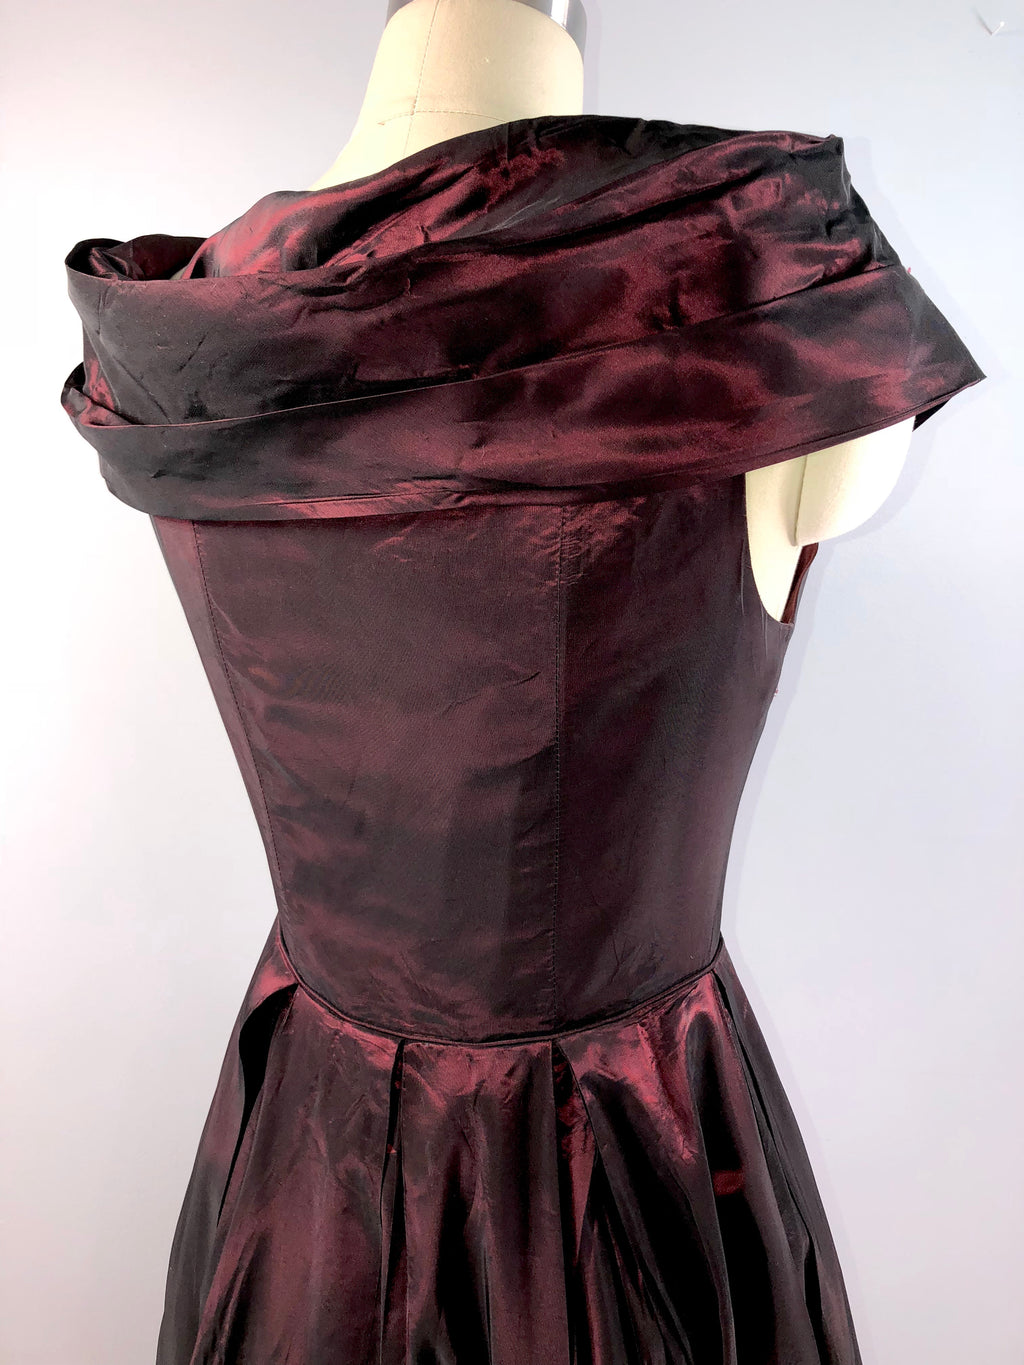 Laura Ashley 70s Dress Vintage 1970s Garnet Red Satin Dress Ball Gown 38 bust